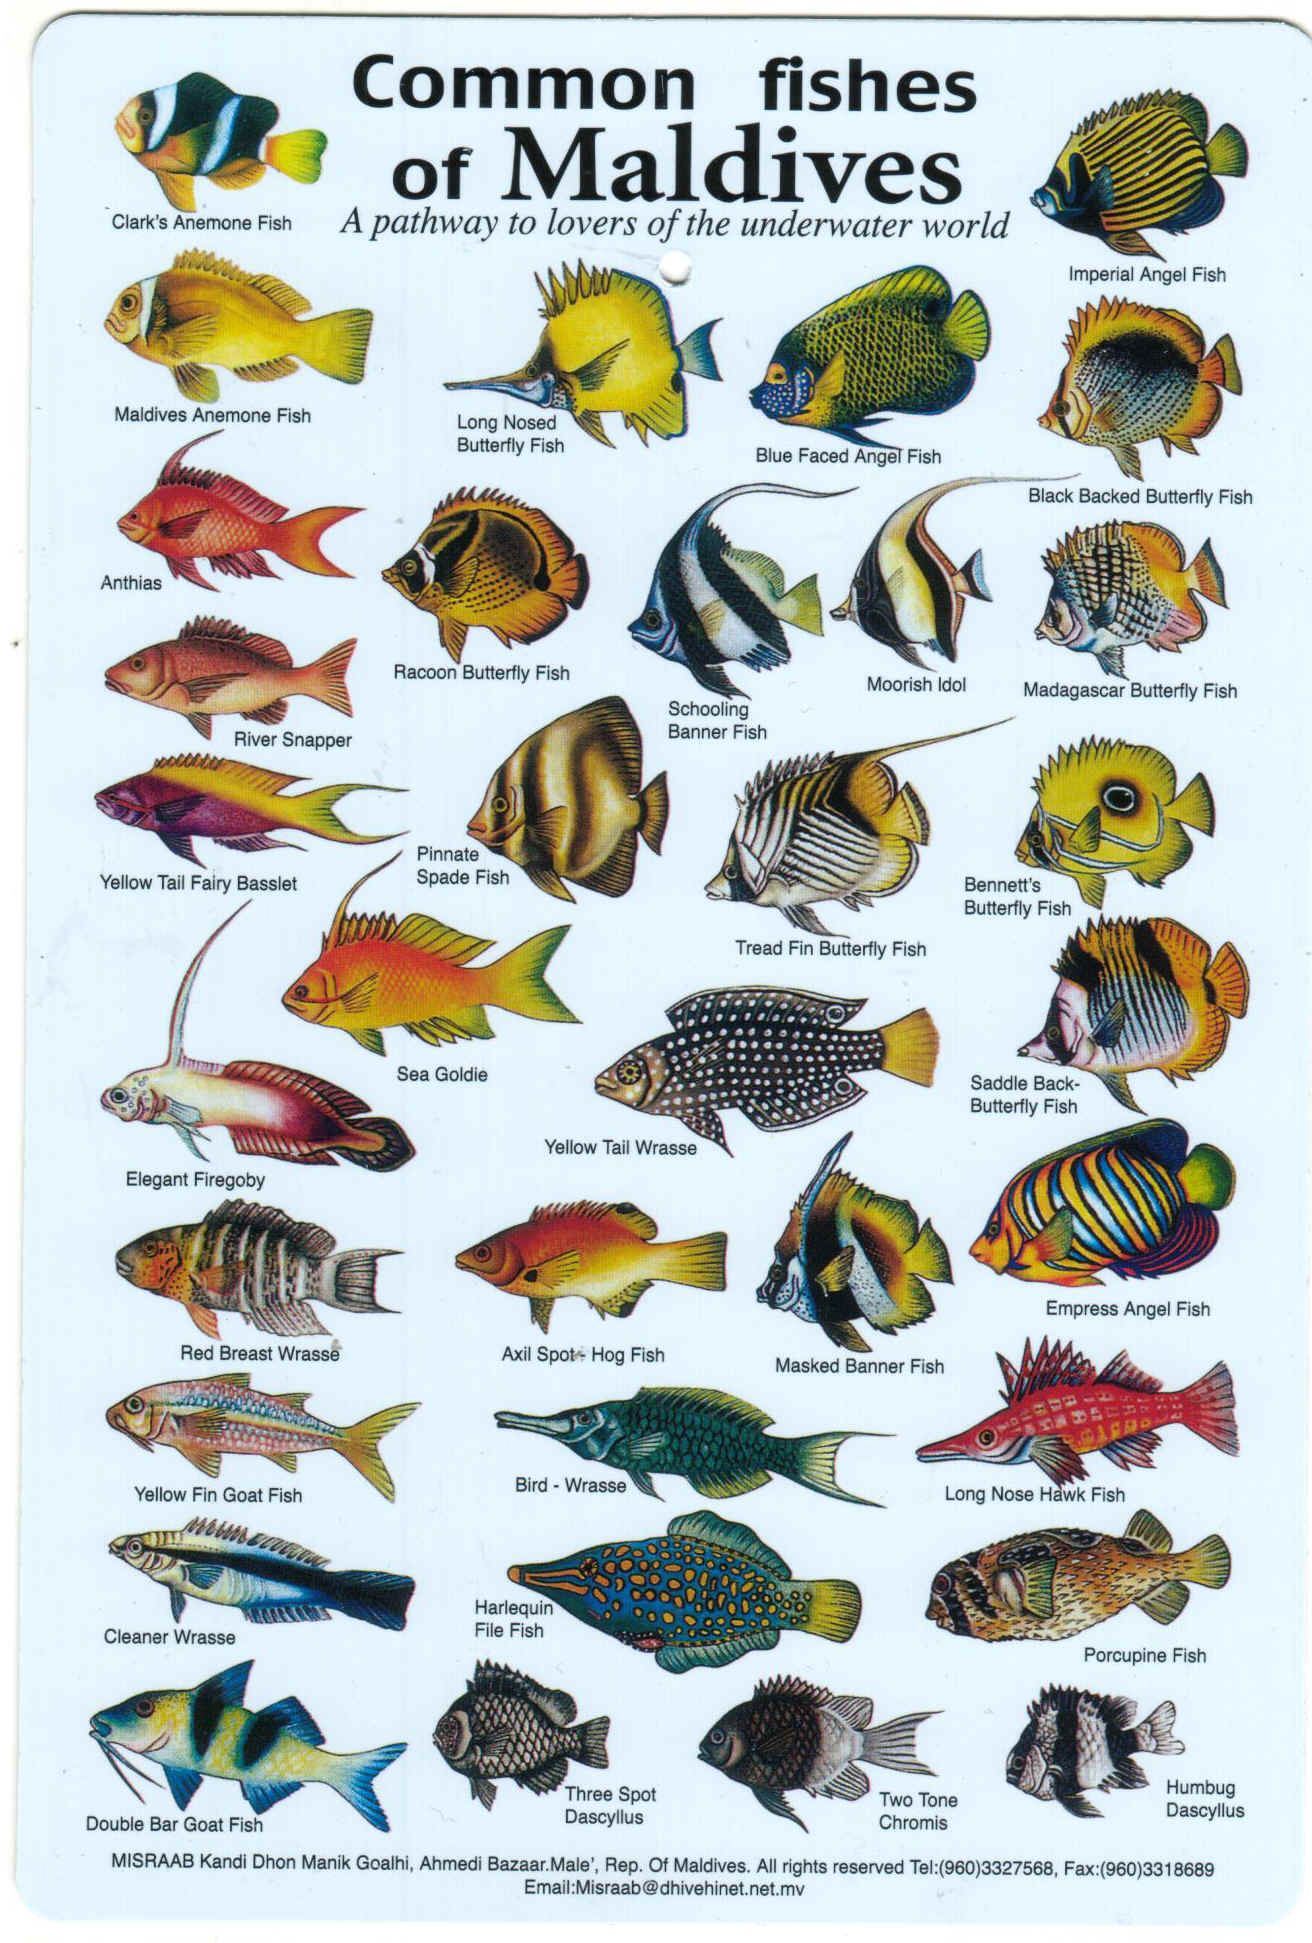 Fishes of the maldives identification chart water for Different types of pet fish